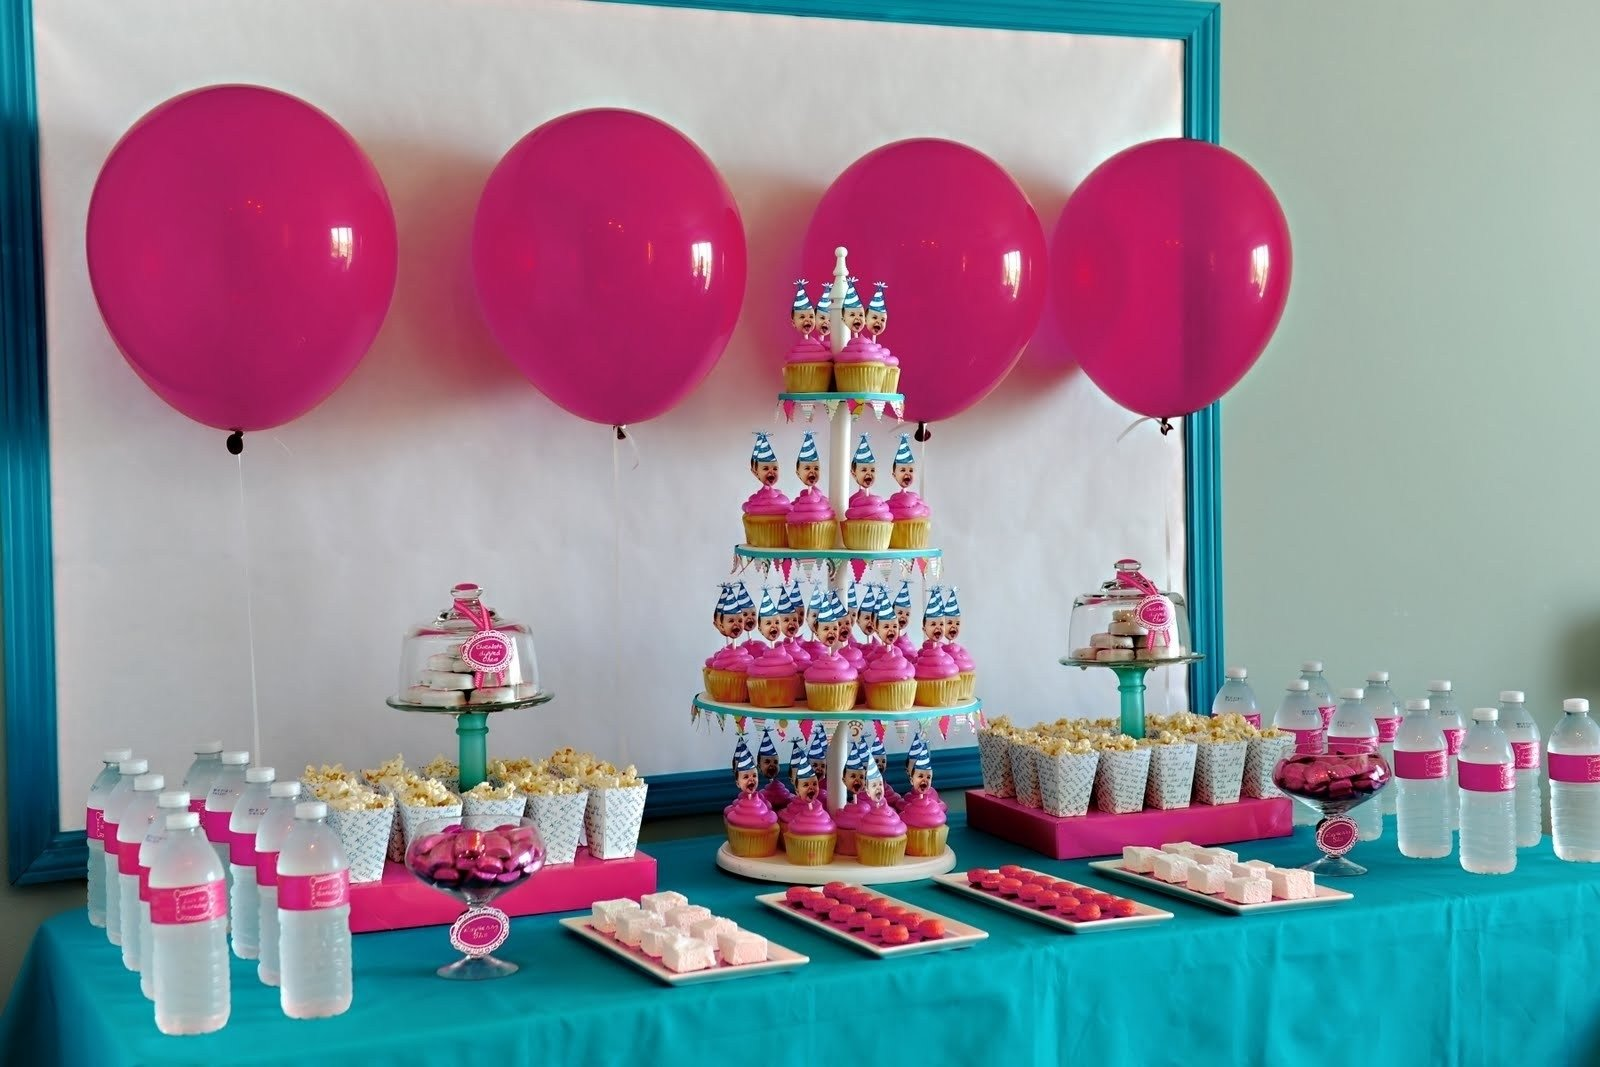 10 Cute One Year Old Birthday Ideas cute year birthday party ideas entertainment ideas for visit 7 2020